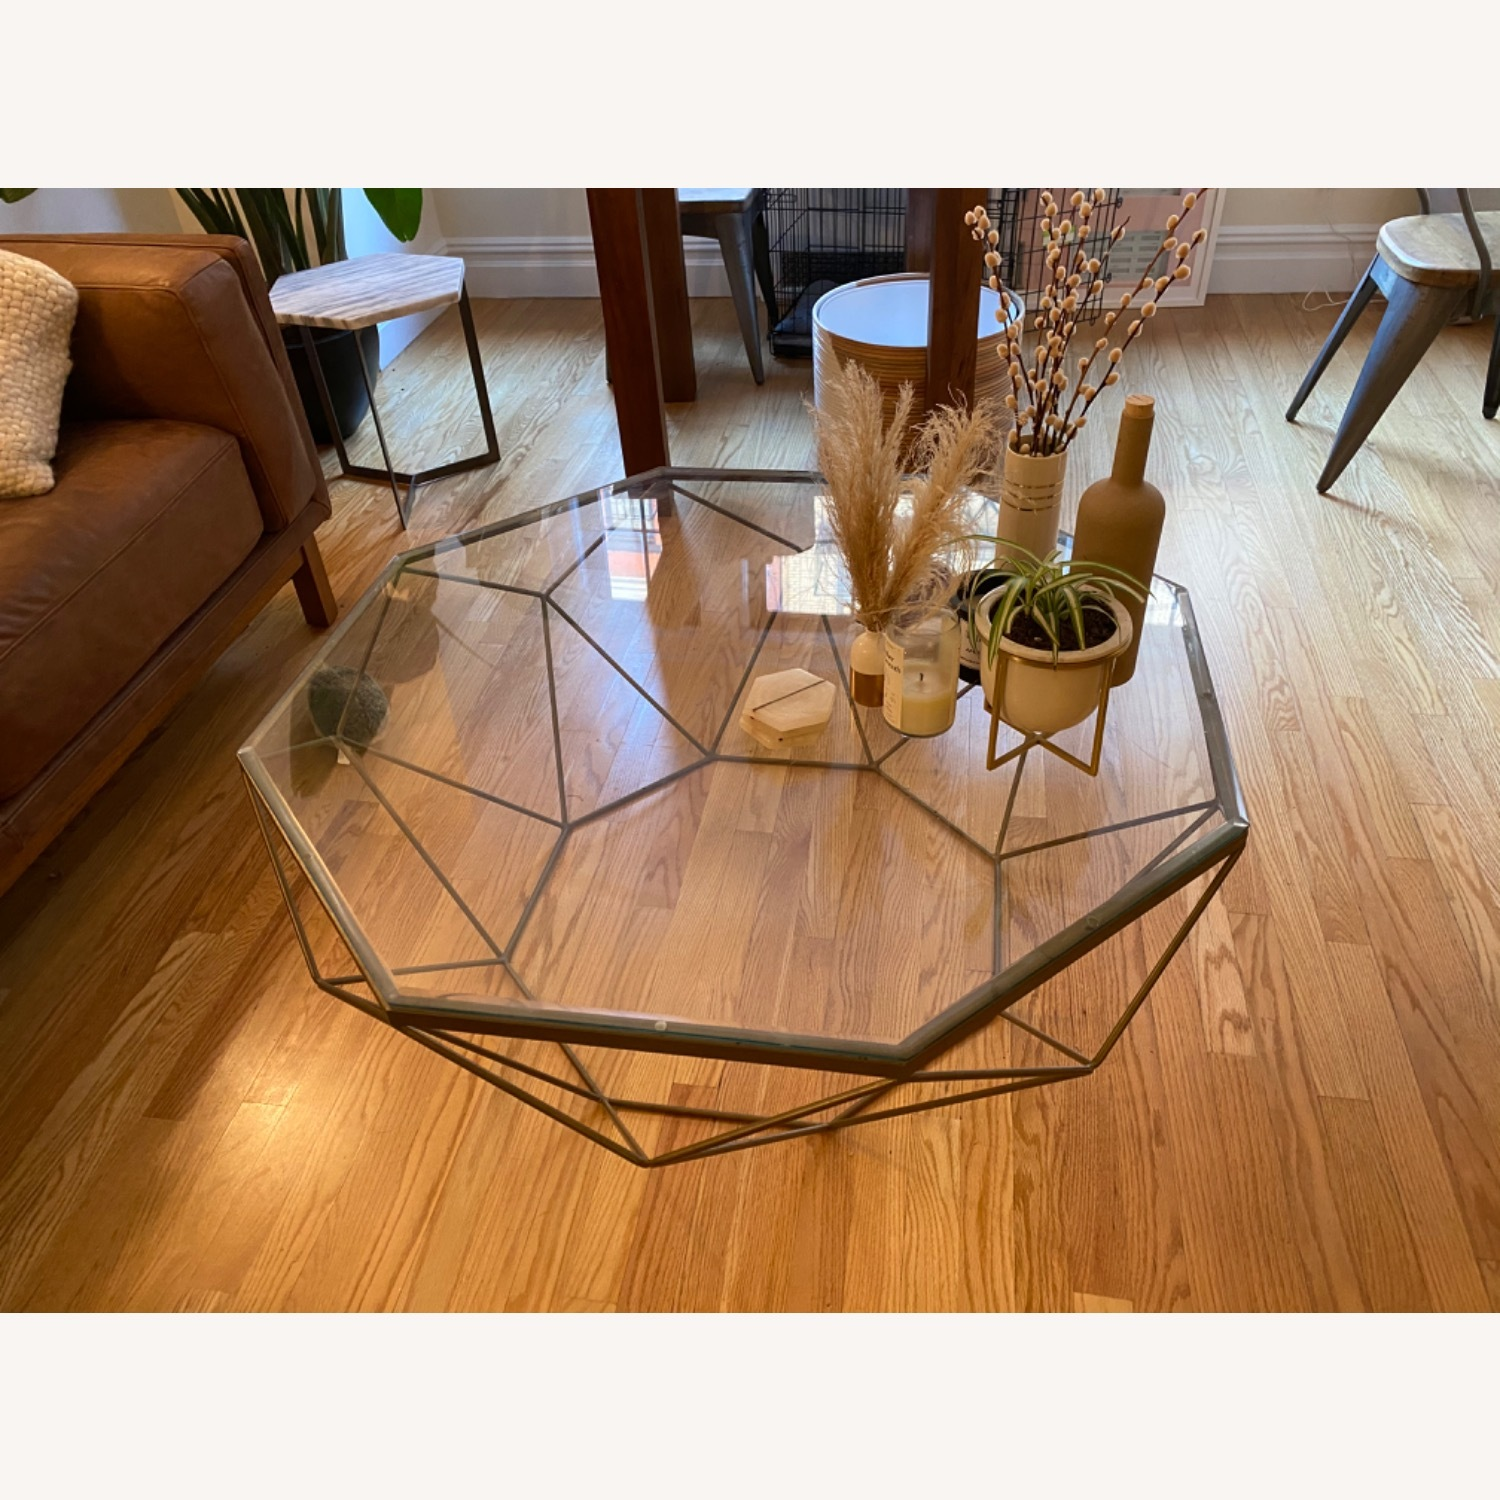 West Elm Geometric Glass Coffee Table - image-2